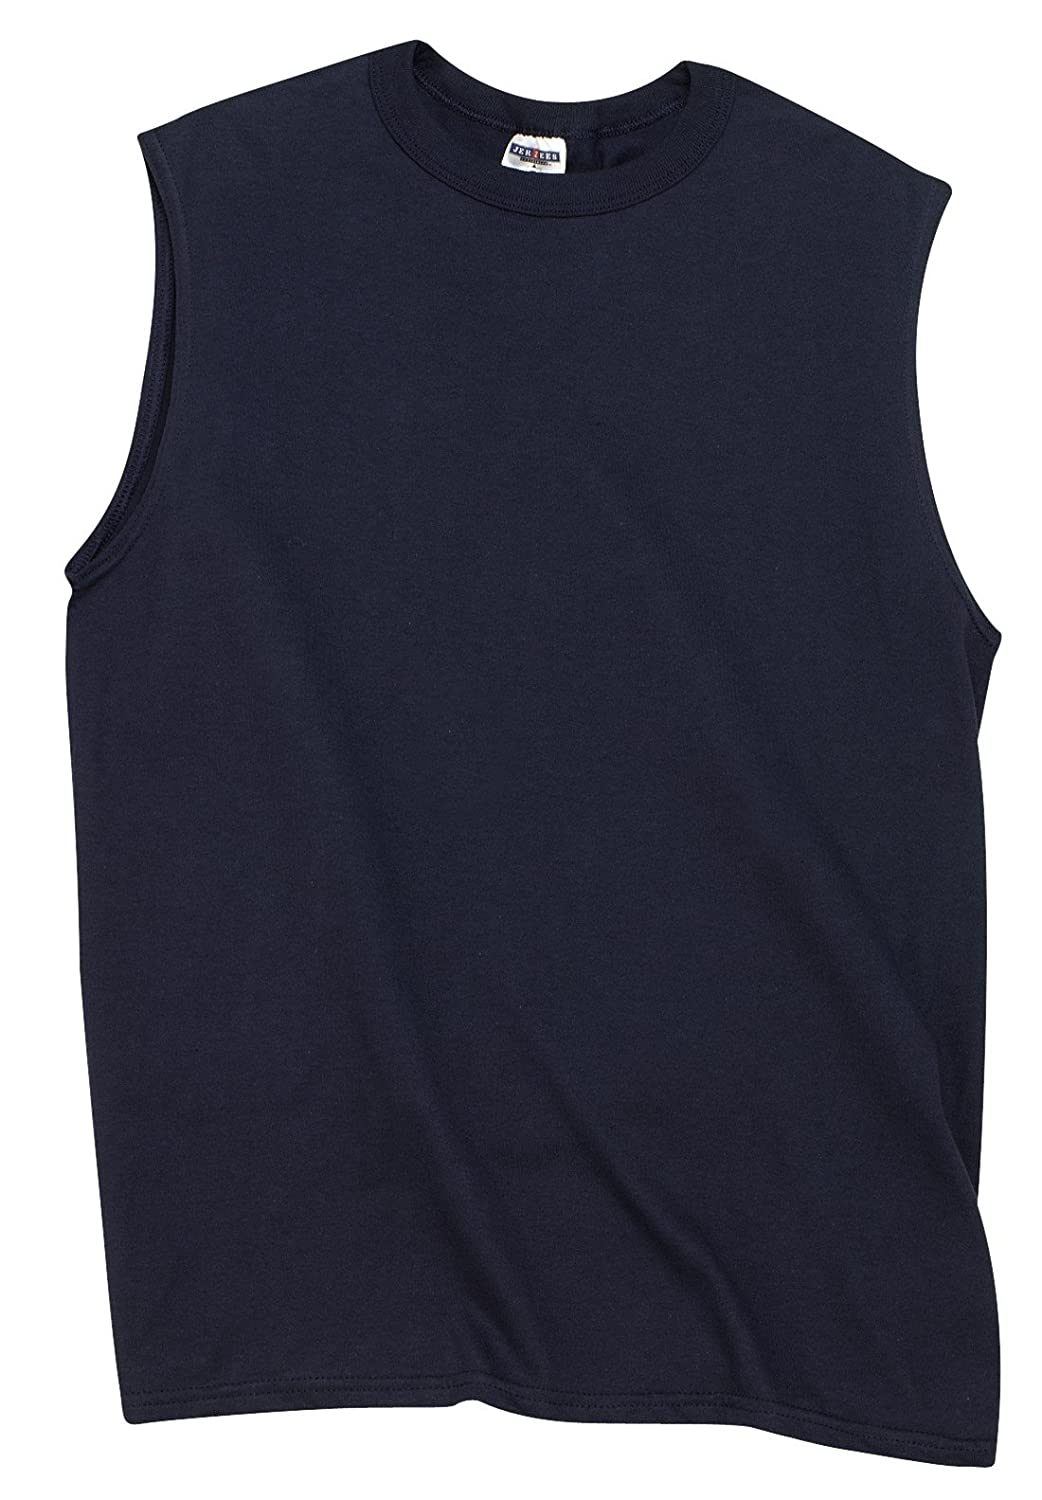 JERZEES 49MR - HiDENSI-T™ Sleeveless T-Shirt